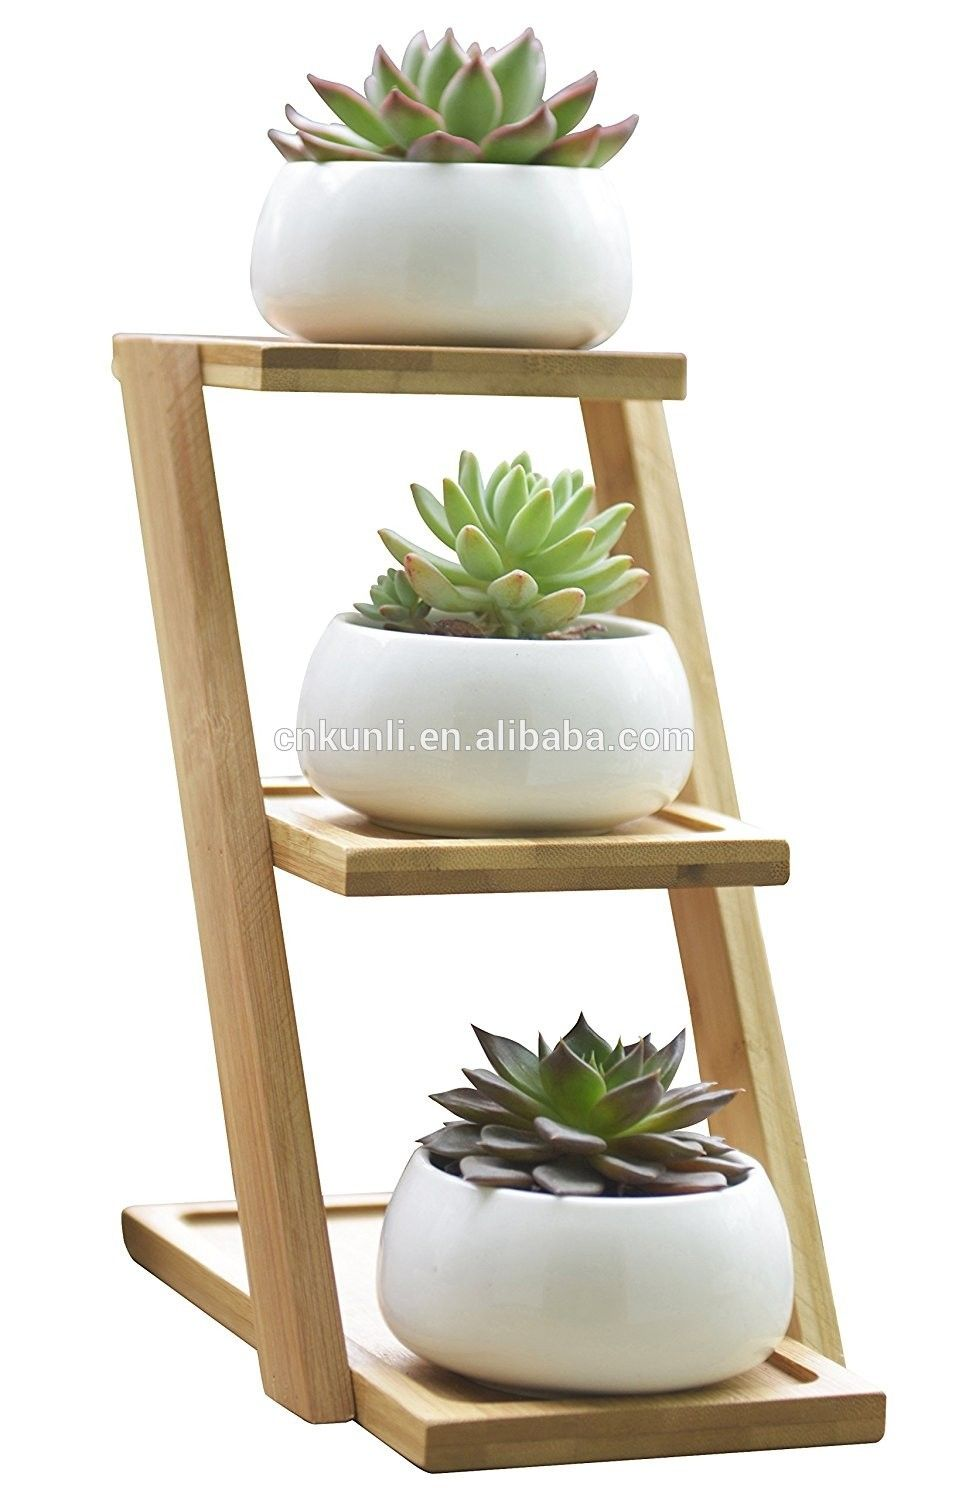 White Ceramic Modern Decorative Small Round Succulent Plant Pot 3 Tier Wooden Stand Product On